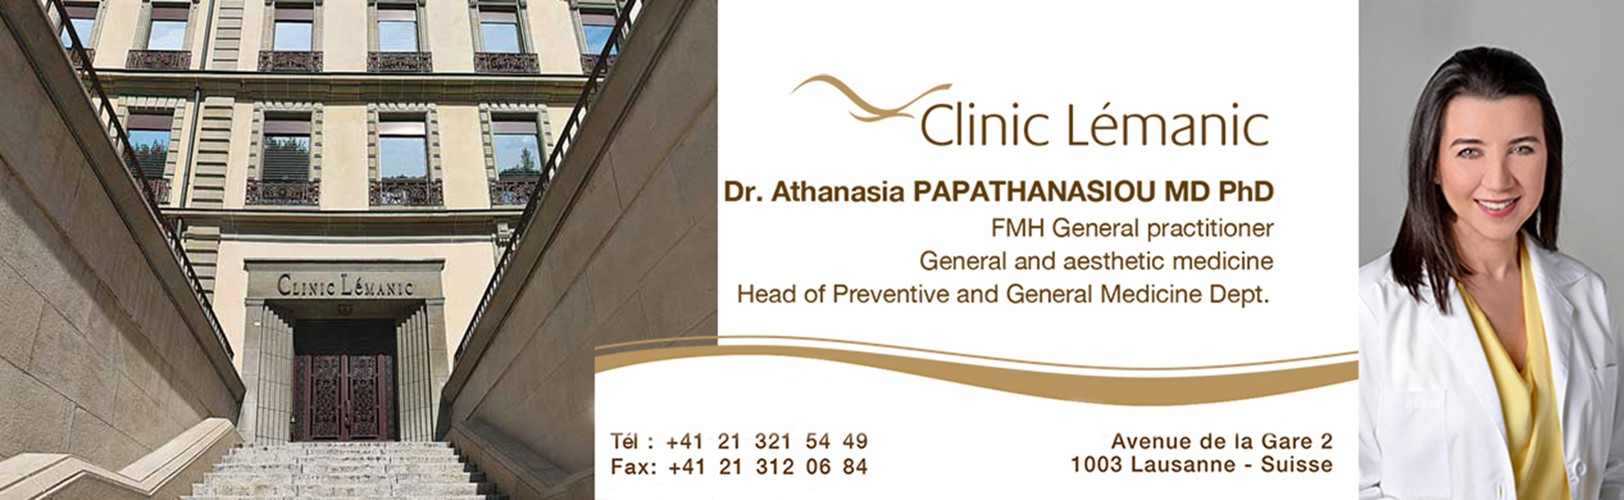 Dr Athanasia Papathanasiou - General practitioner (FMH)